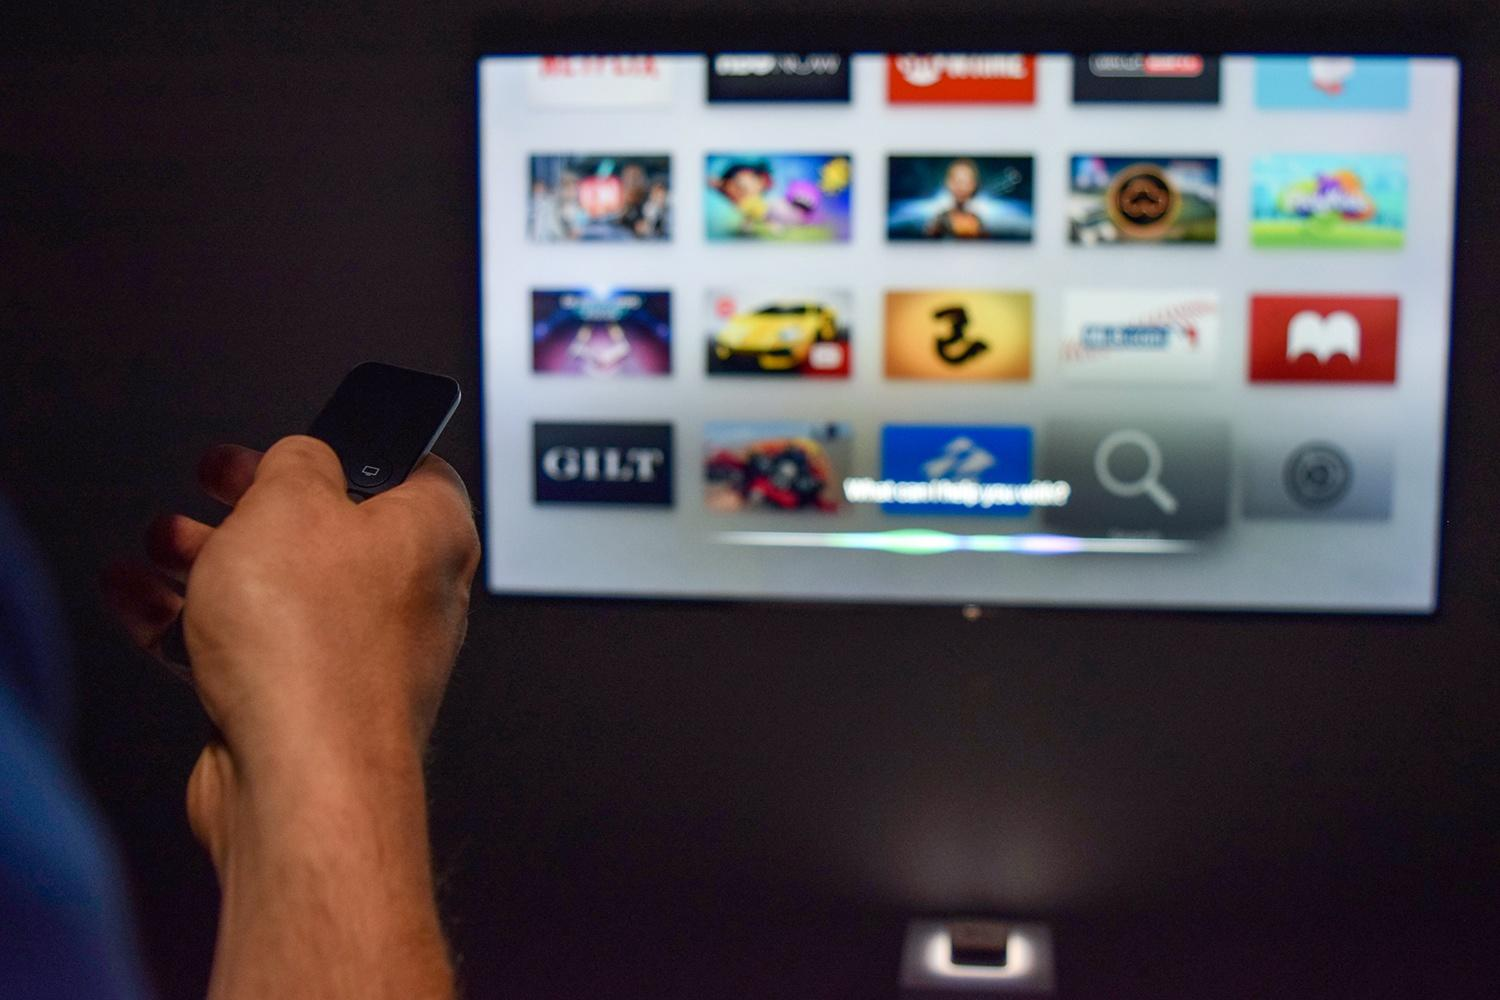 BitTorrent news streaming app OTT News now available for the Apple TV